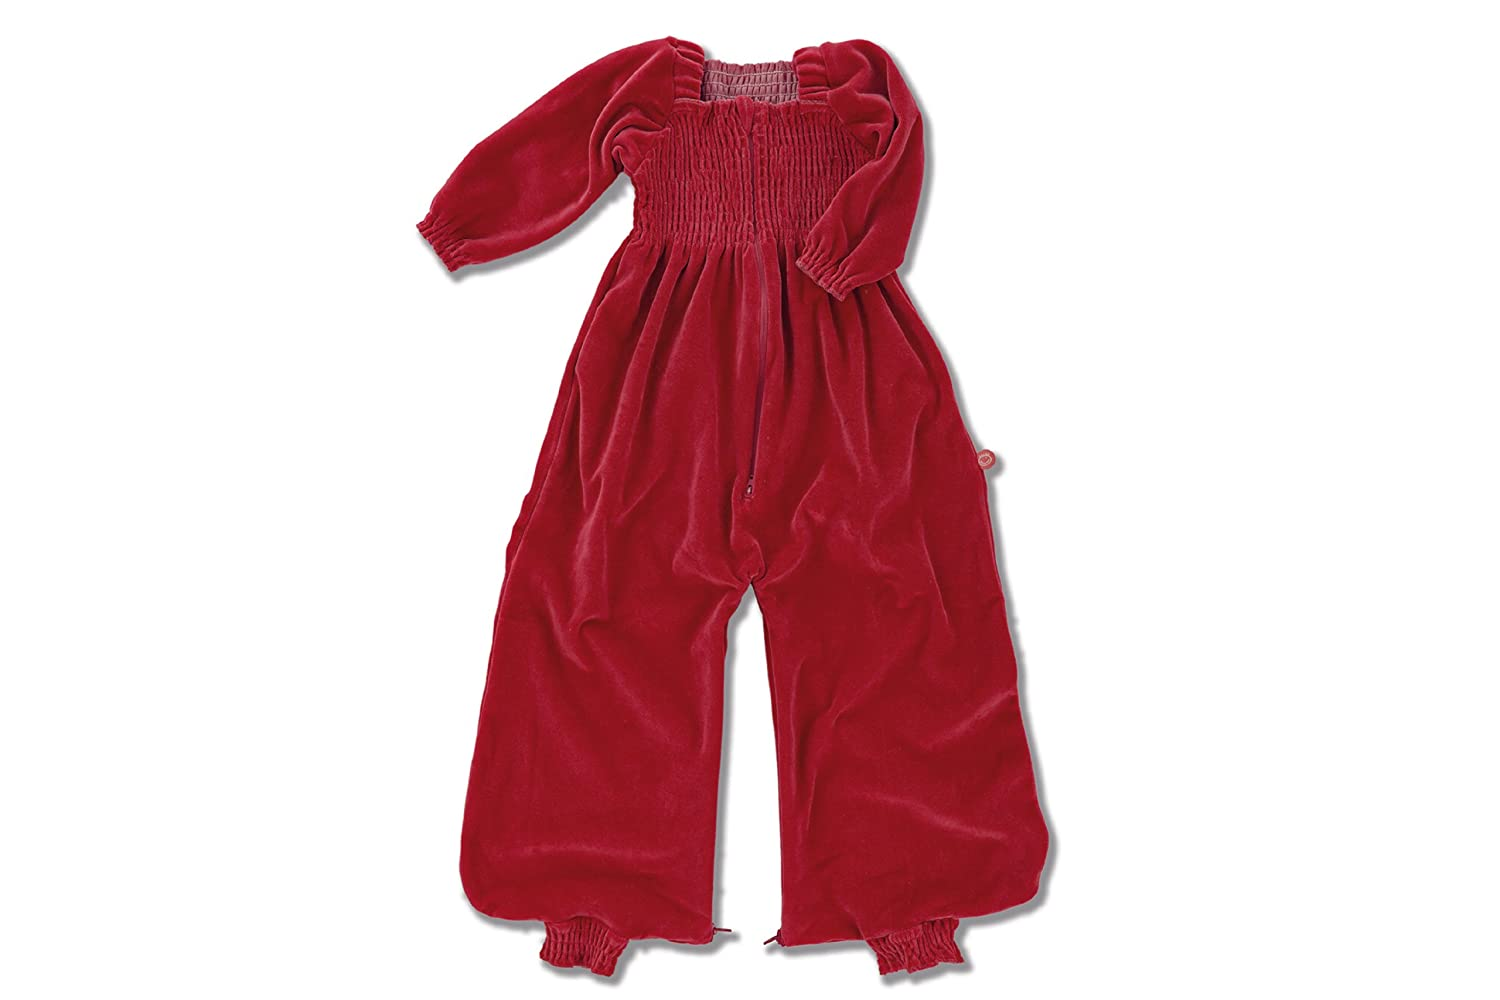 4e3616af8b3a Baby Boum 624m Cotton Rich Velvet Winter Sleeping Bag Cum Jumpsuit from the  Frill collection (Raspberry Red)  Amazon.co.uk  Baby